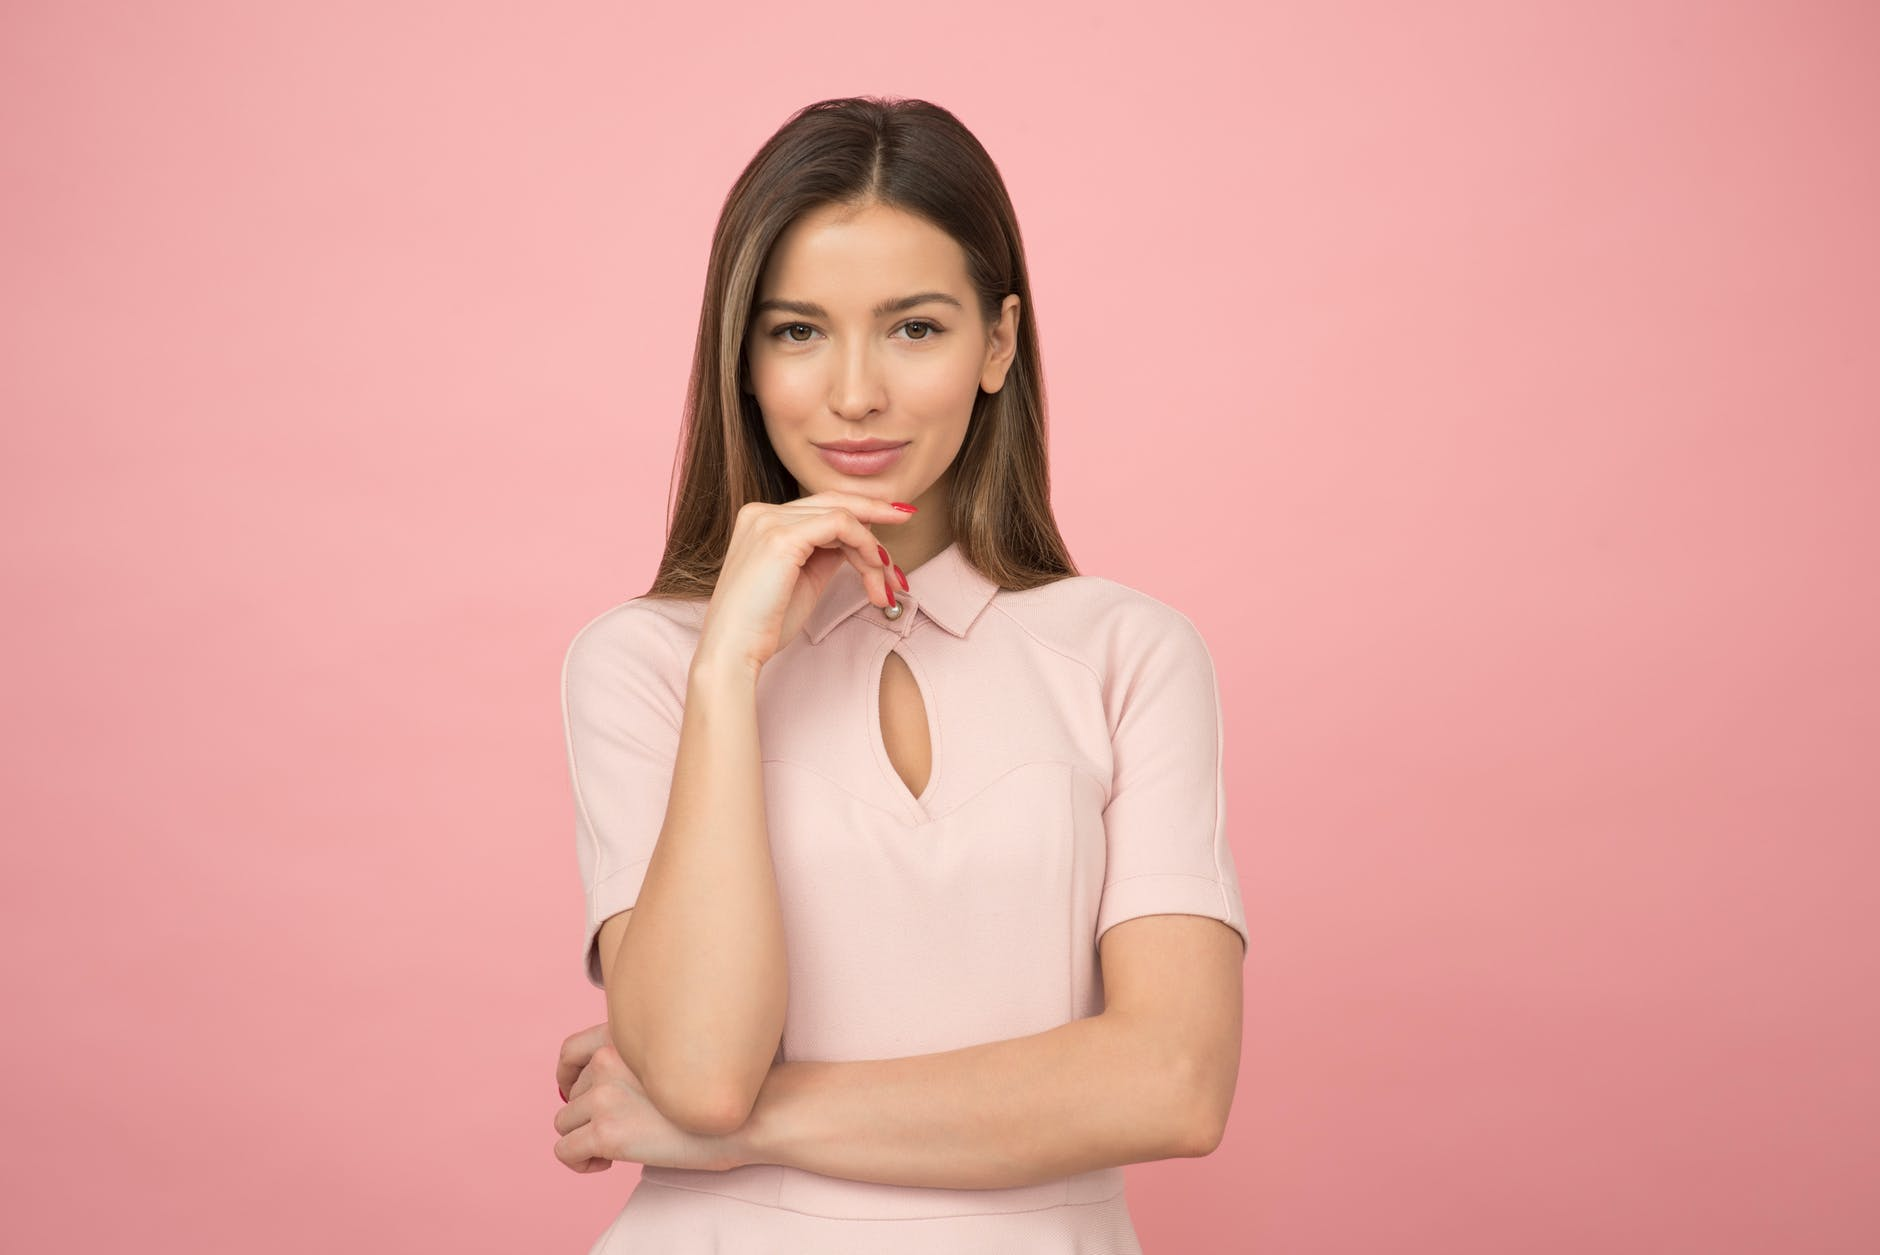 woman wearing pink collared half sleeved top